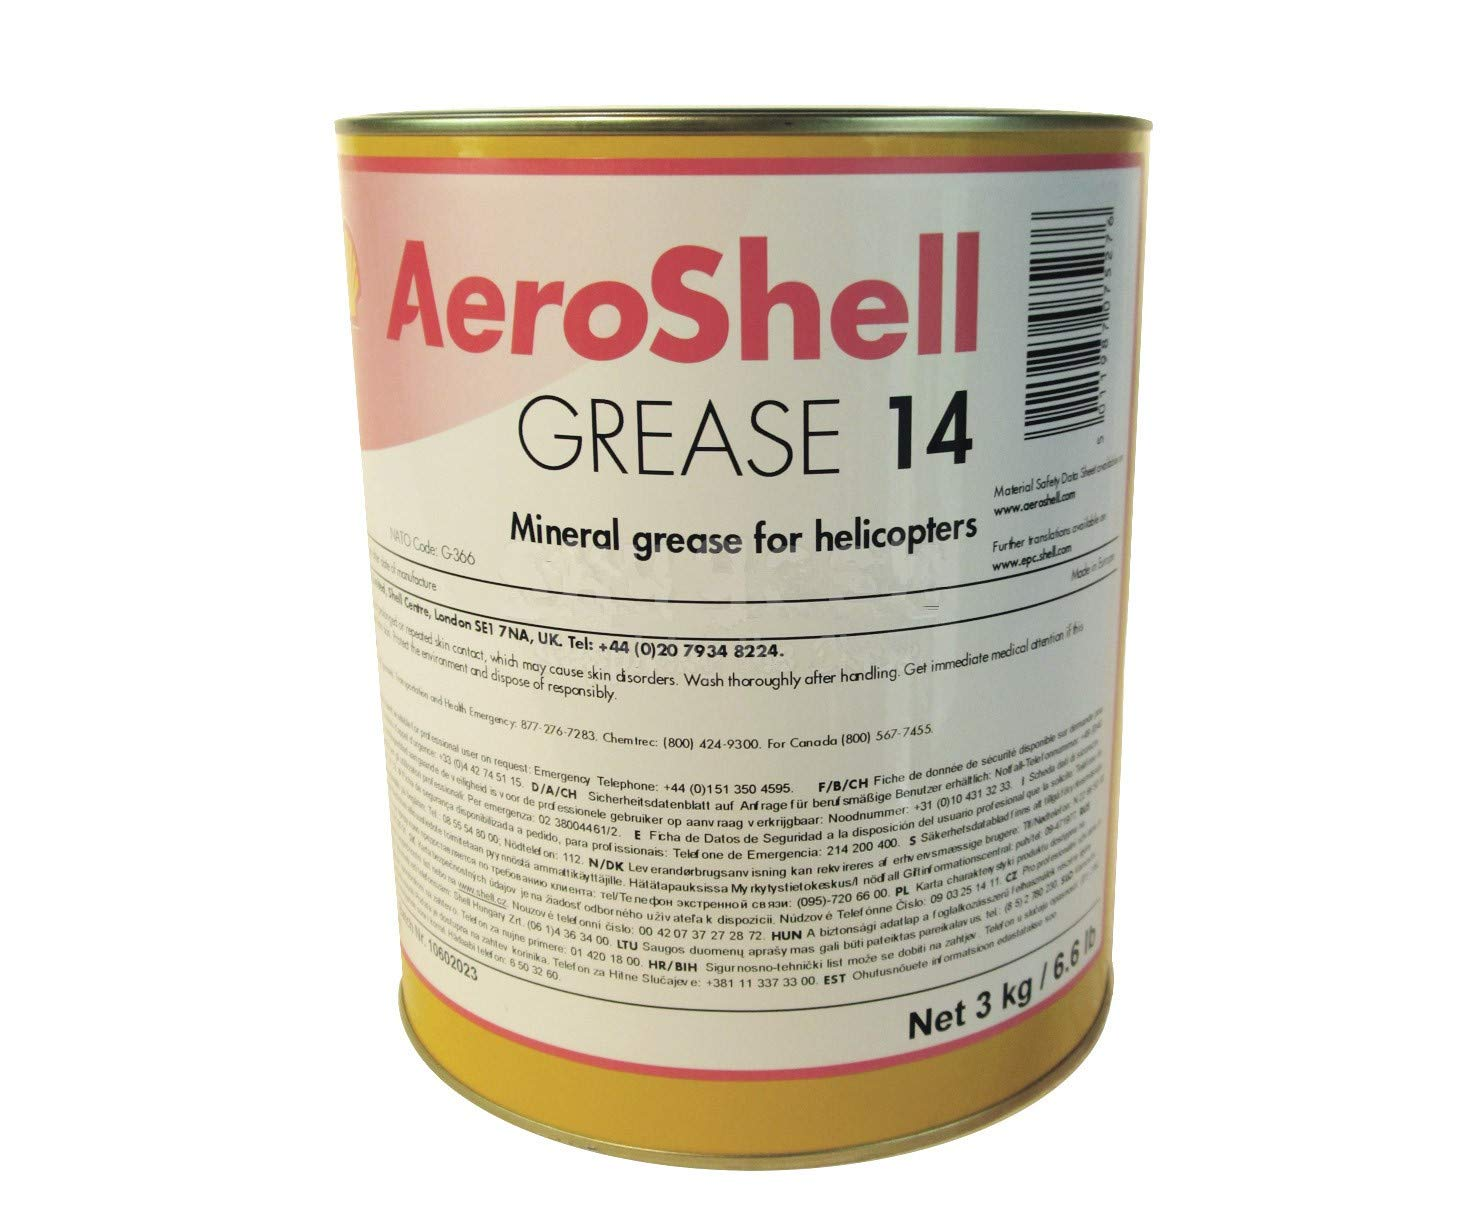 AeroShell Grease 14 Multi-Purpose Helicopter Mineral Grease - 3 Kg (6.6 lb) Can